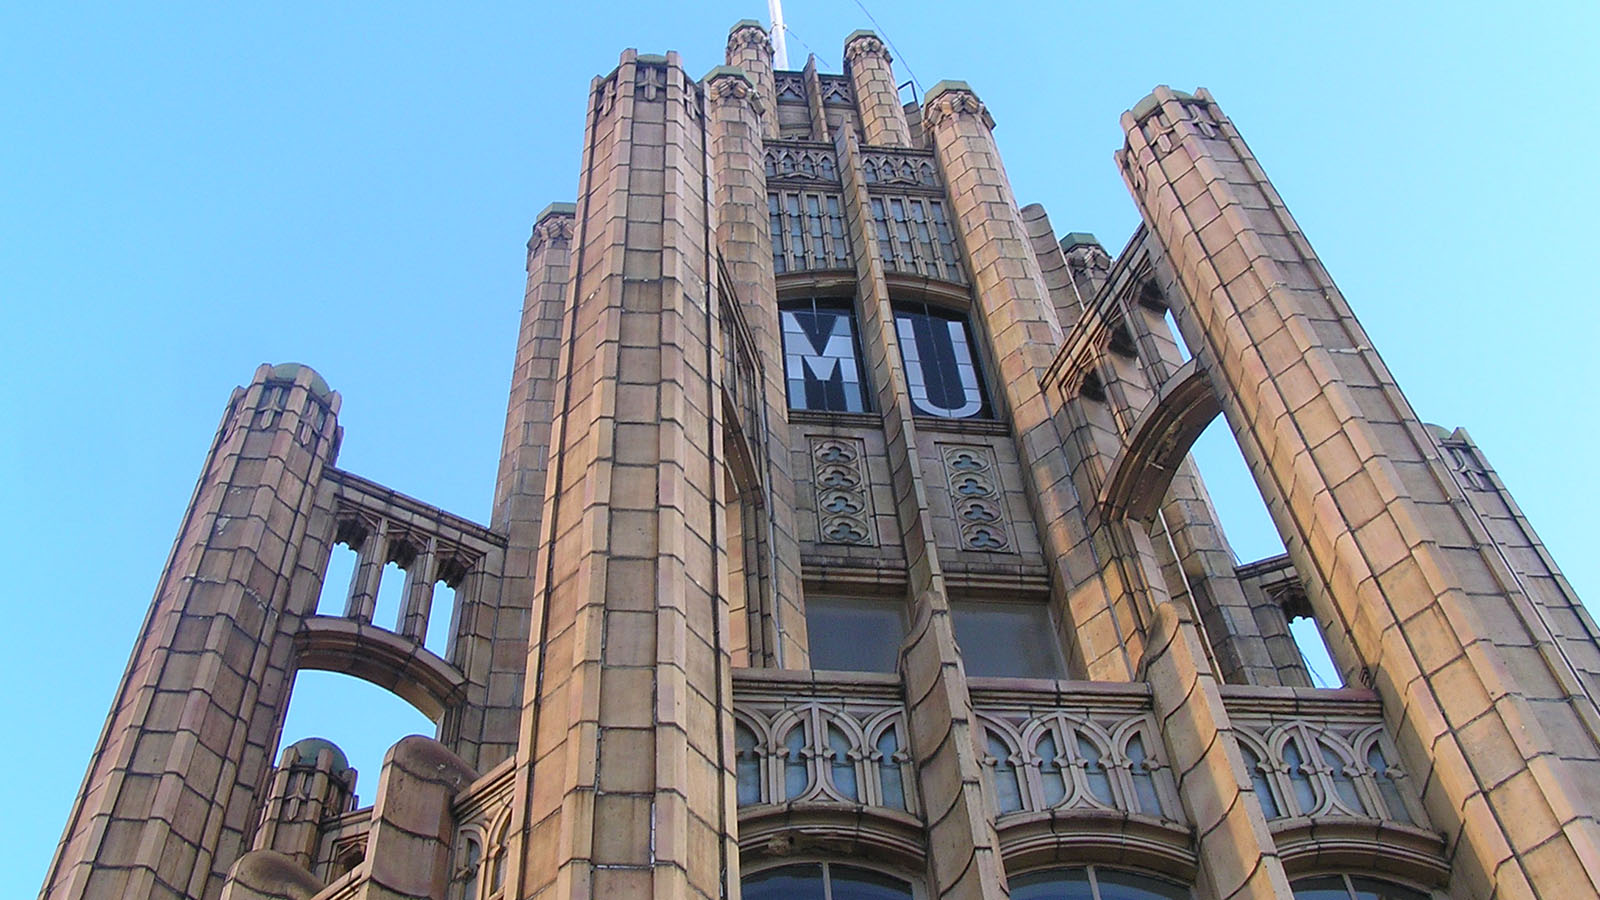 Manchester Unity Building, Melbourne, Victoria. Photo: Ayesha Lawrence.